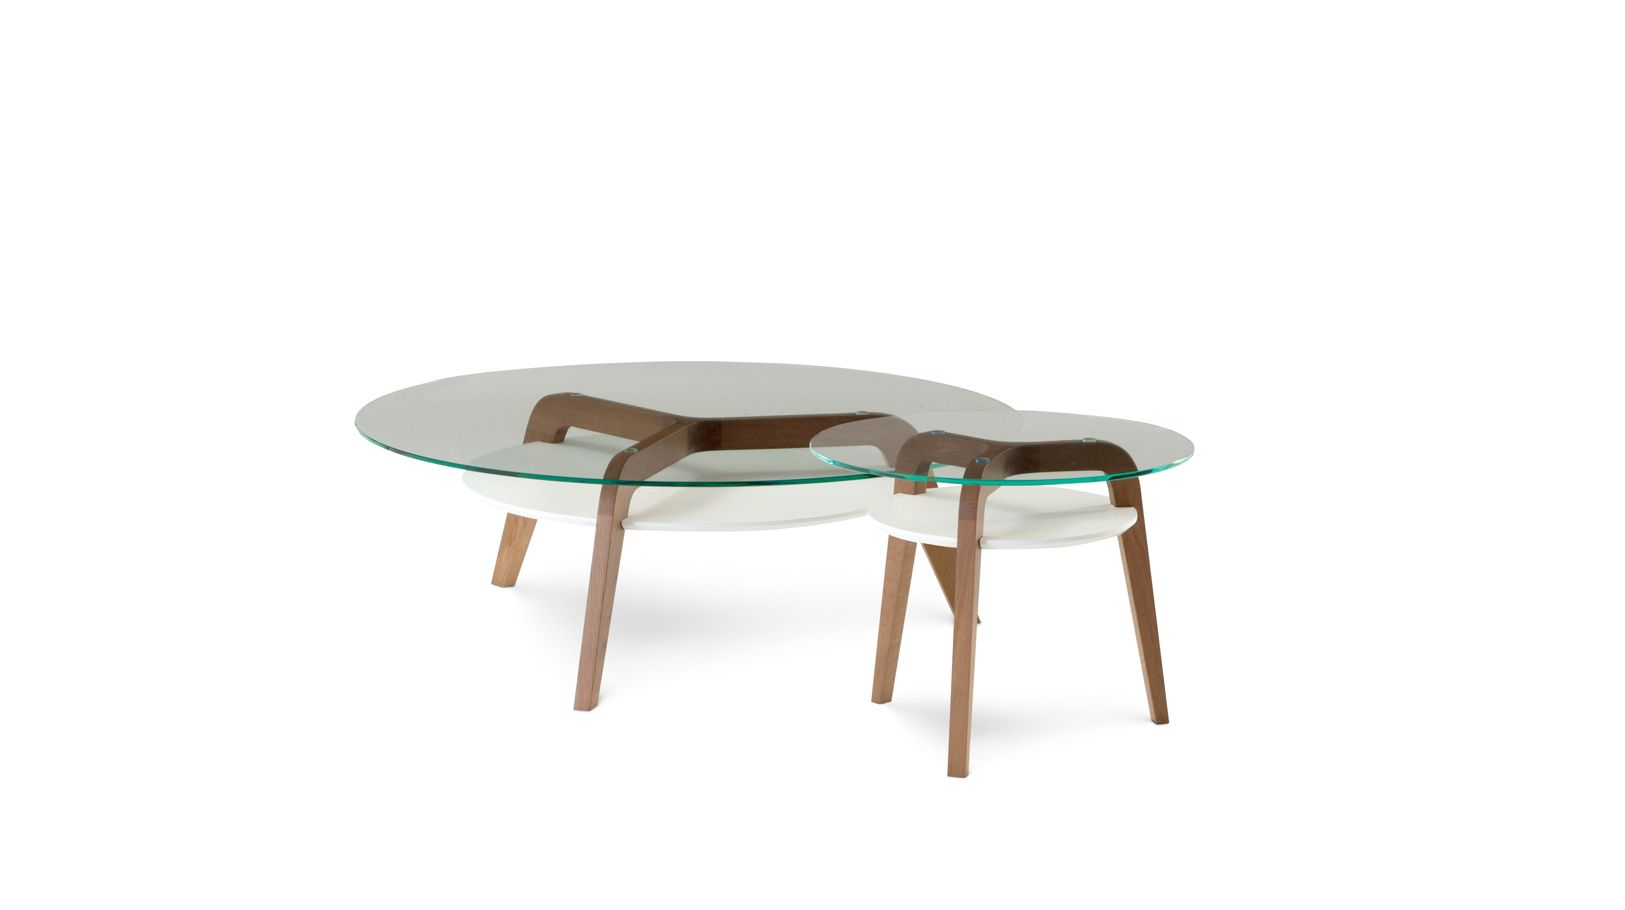 Flying glass cocktail table roche bobois - Table basse acrylique ...